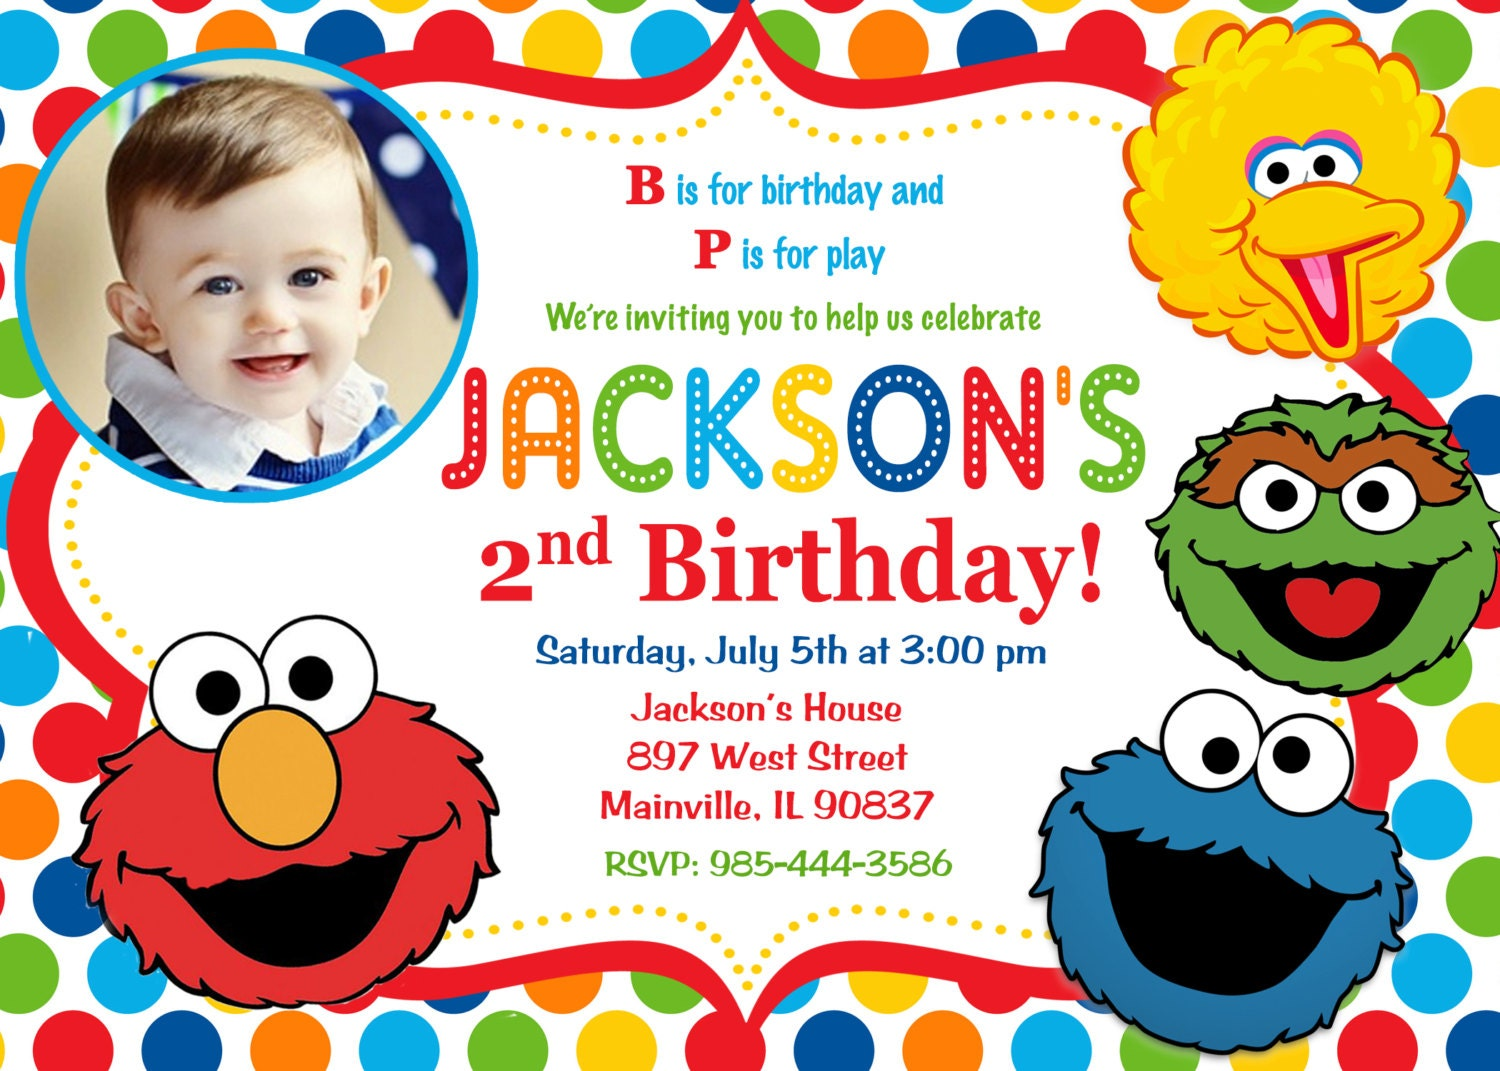 Sesame Street Invitation with beautiful invitations example